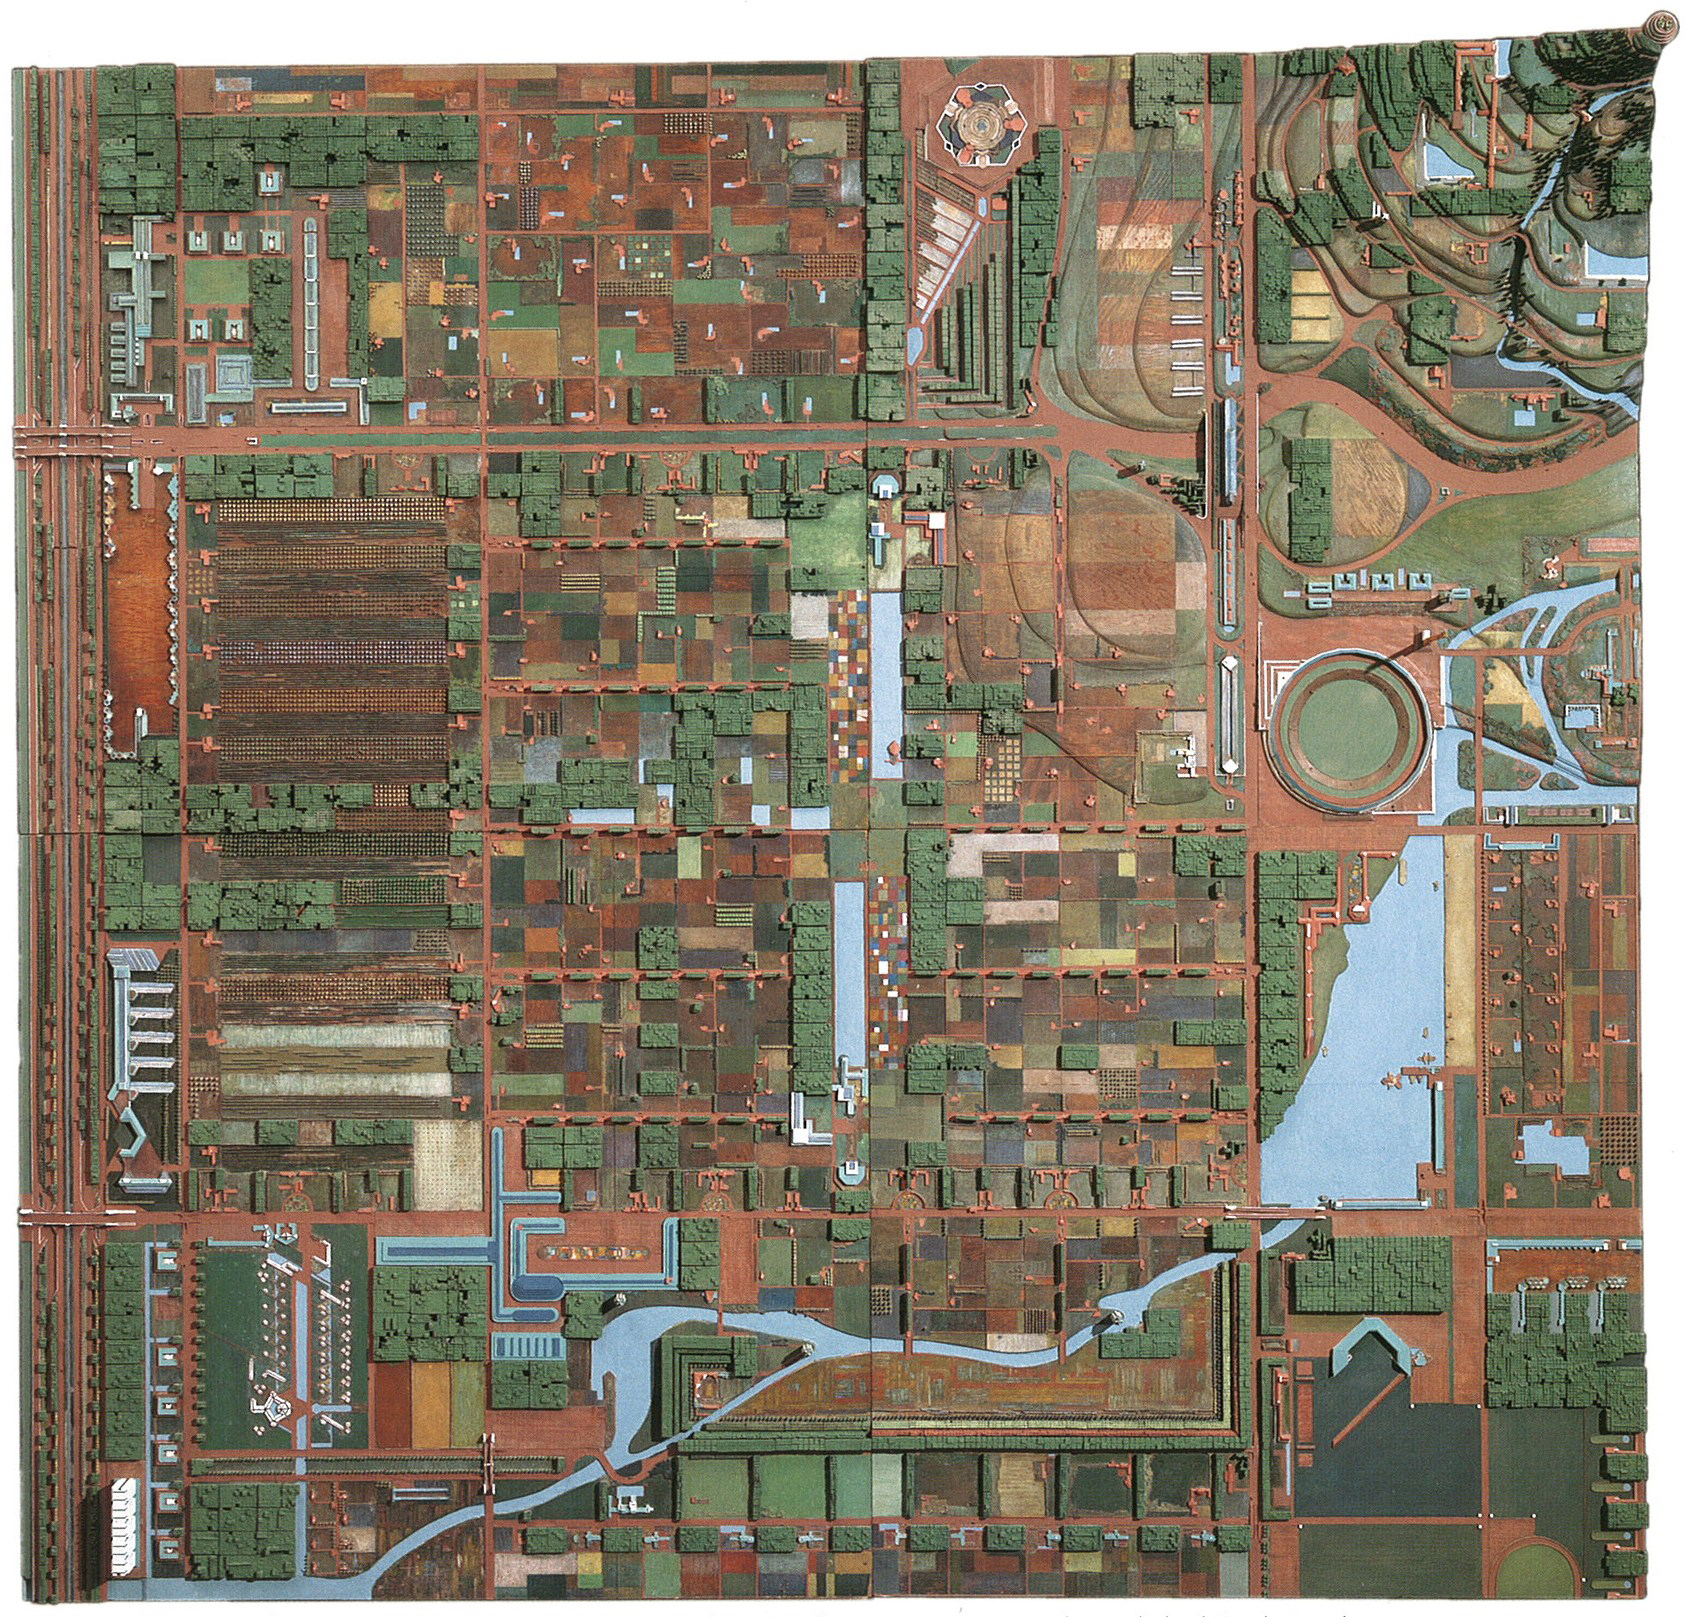 Frank Lloyd Wright (American, 1867–1959). Broadacre City. Project, 1934–35. Model: painted wood, 152 × 152″ (386.1 x 386.1 cm). The Frank Lloyd Wright Foundation Archives (The Museum of Modern Art | Avery Architectural & Fine Arts Library, Columbia University, New York)